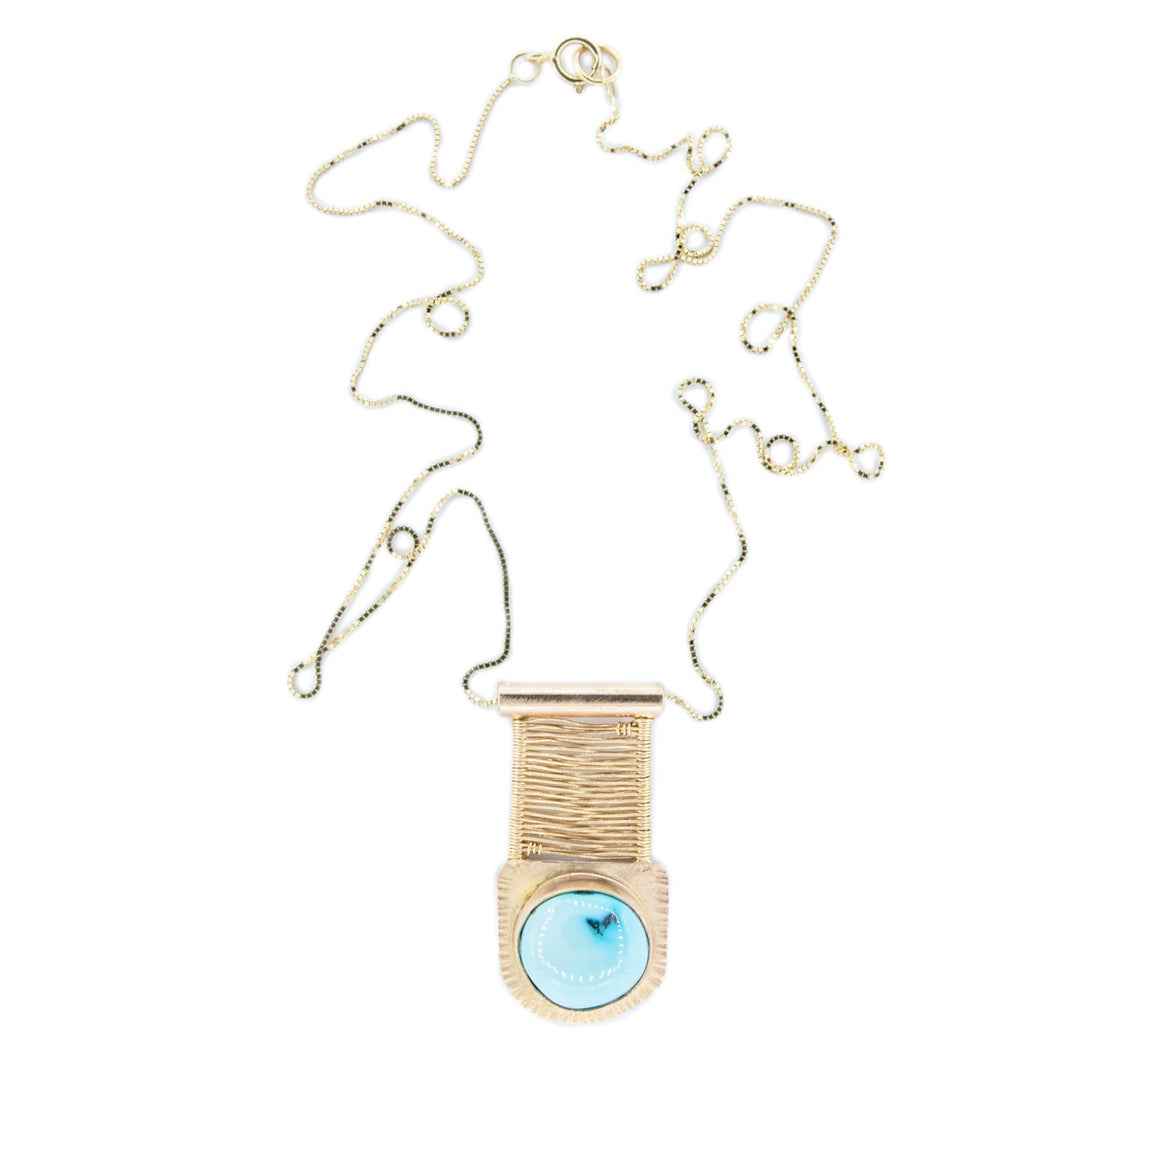 14k Gold Necklace with Turquoise by Original Sin Jewelry